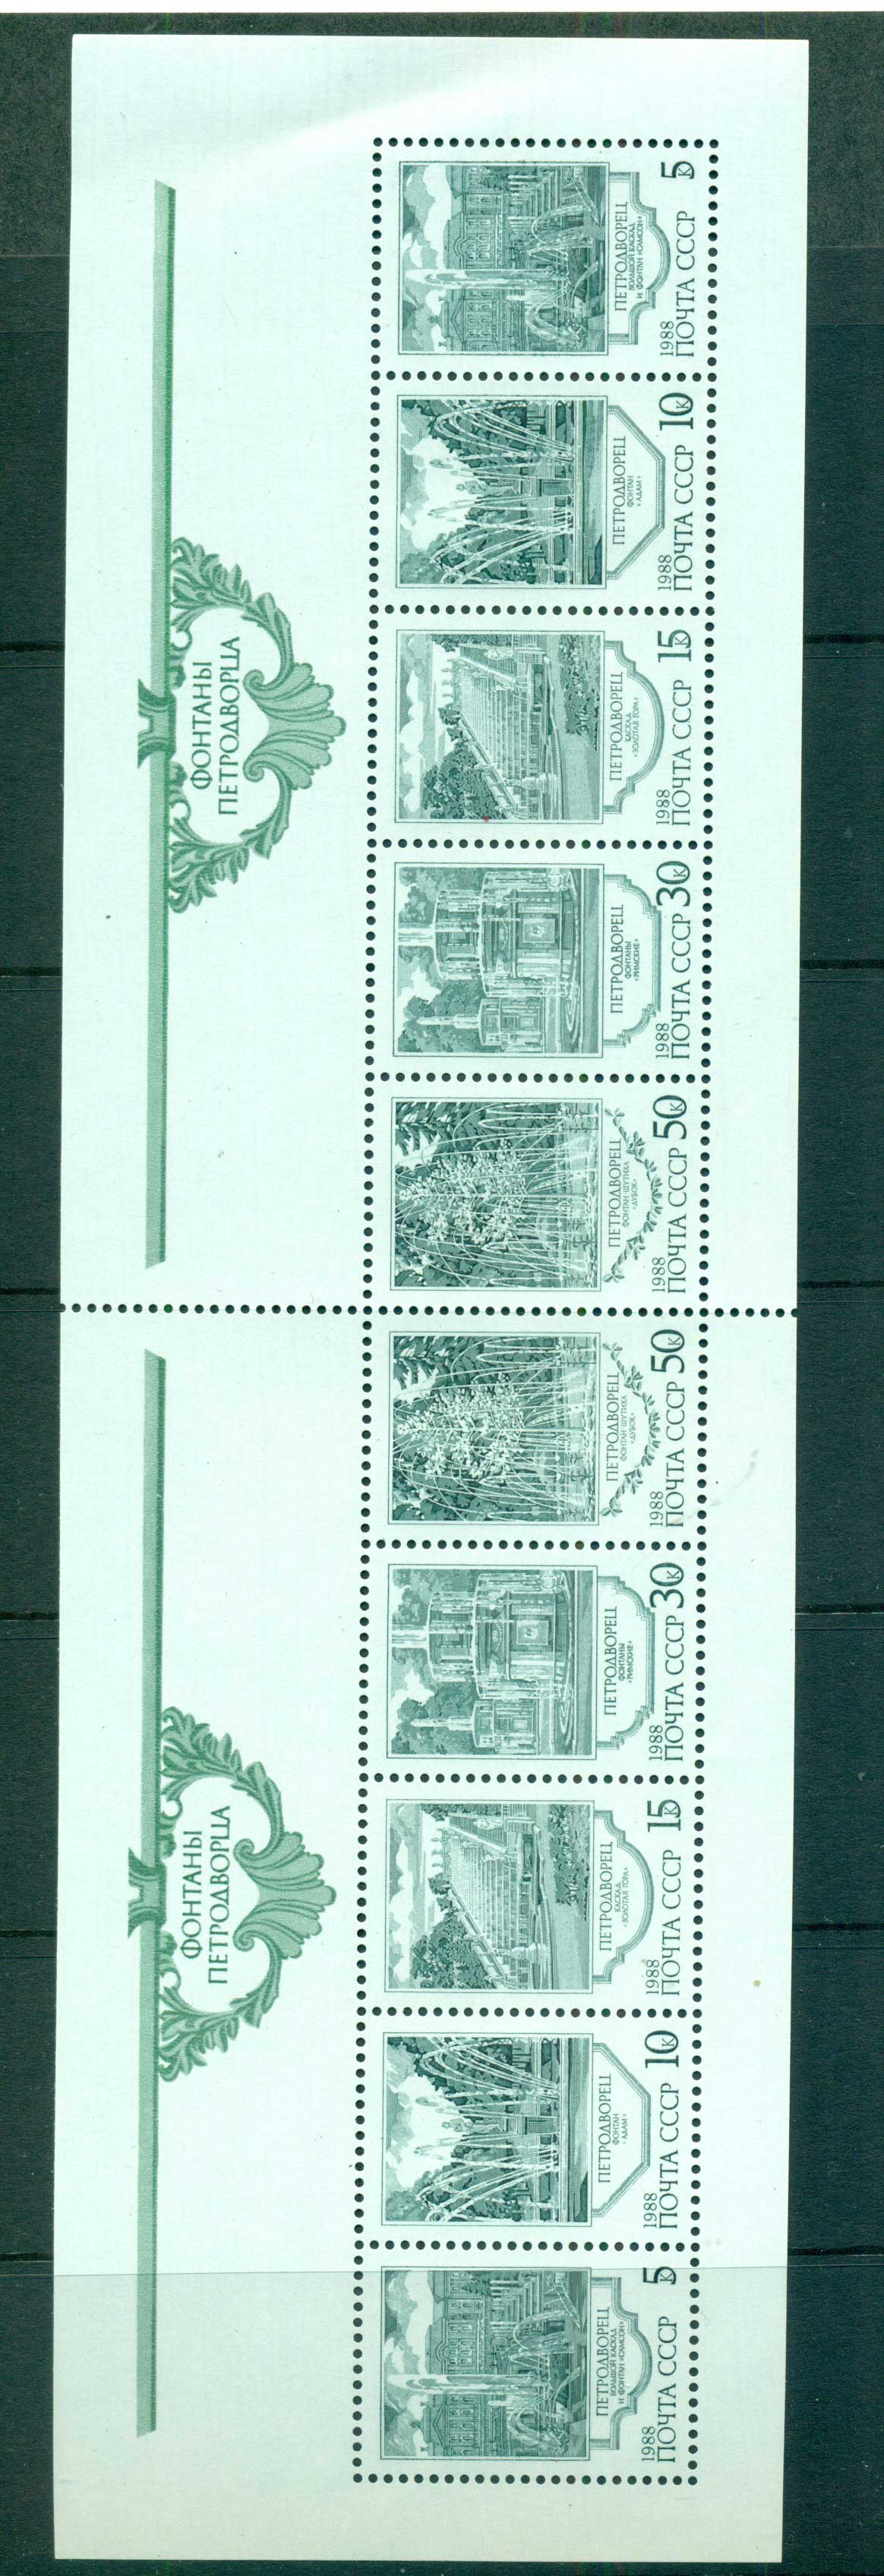 Russia 1988 Fountains of Petrodvorets double pane (folded) MUH lot59522